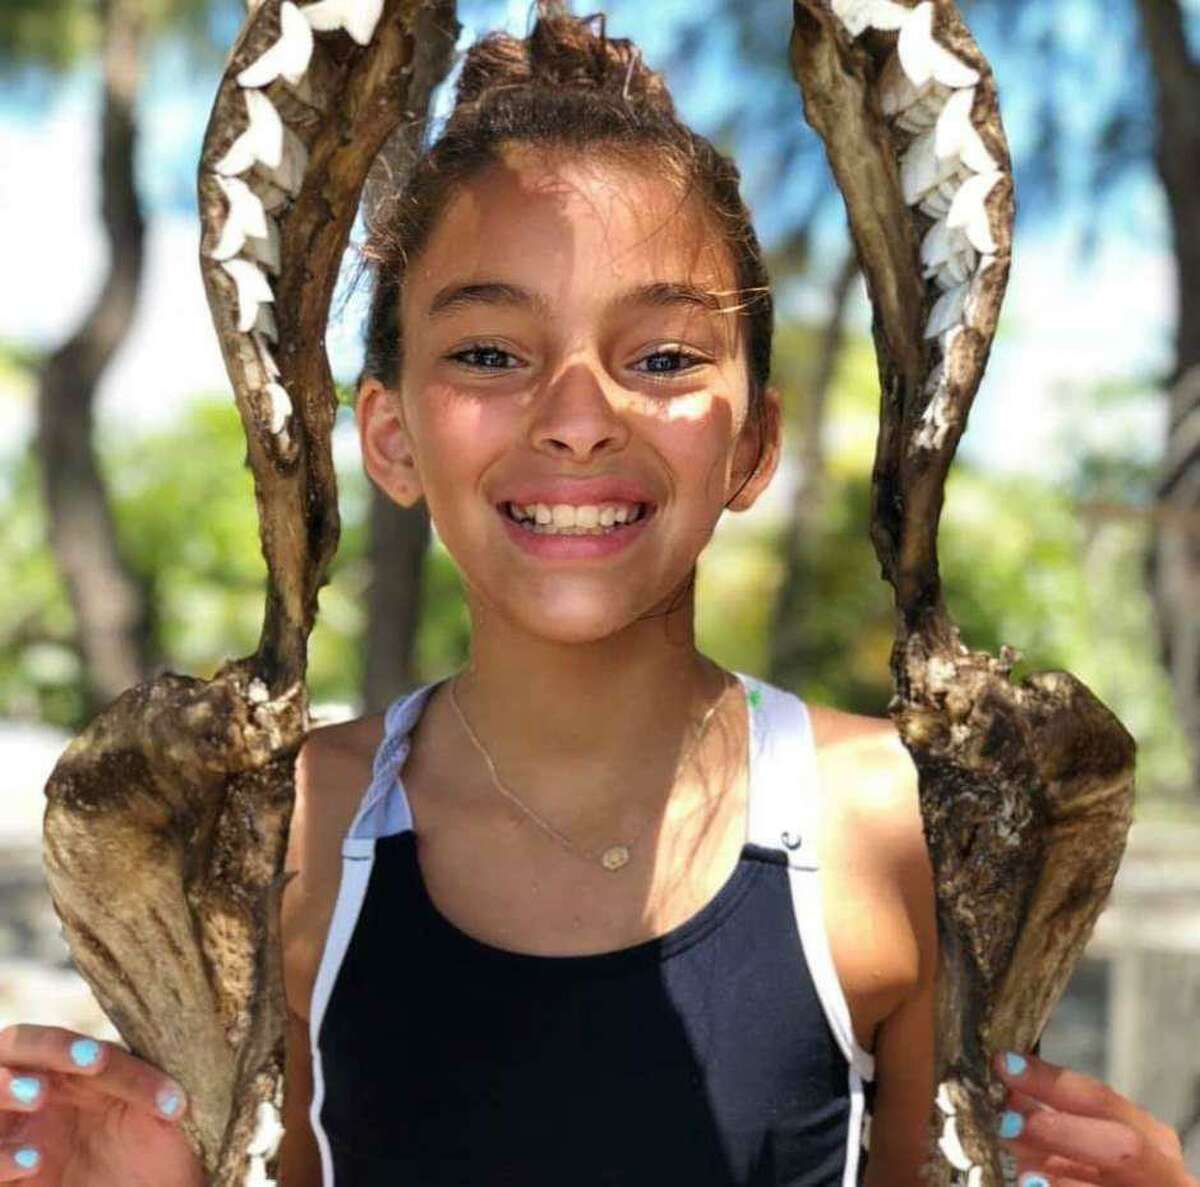 London Sophia Bribiescas, 10, was found shot to death with her mother, Nichol Olsen, 37, and sister, Alexa Montez, 16, at a home near Leon Springs. More than a year later, the families are still waiting to learn who committed the crime.